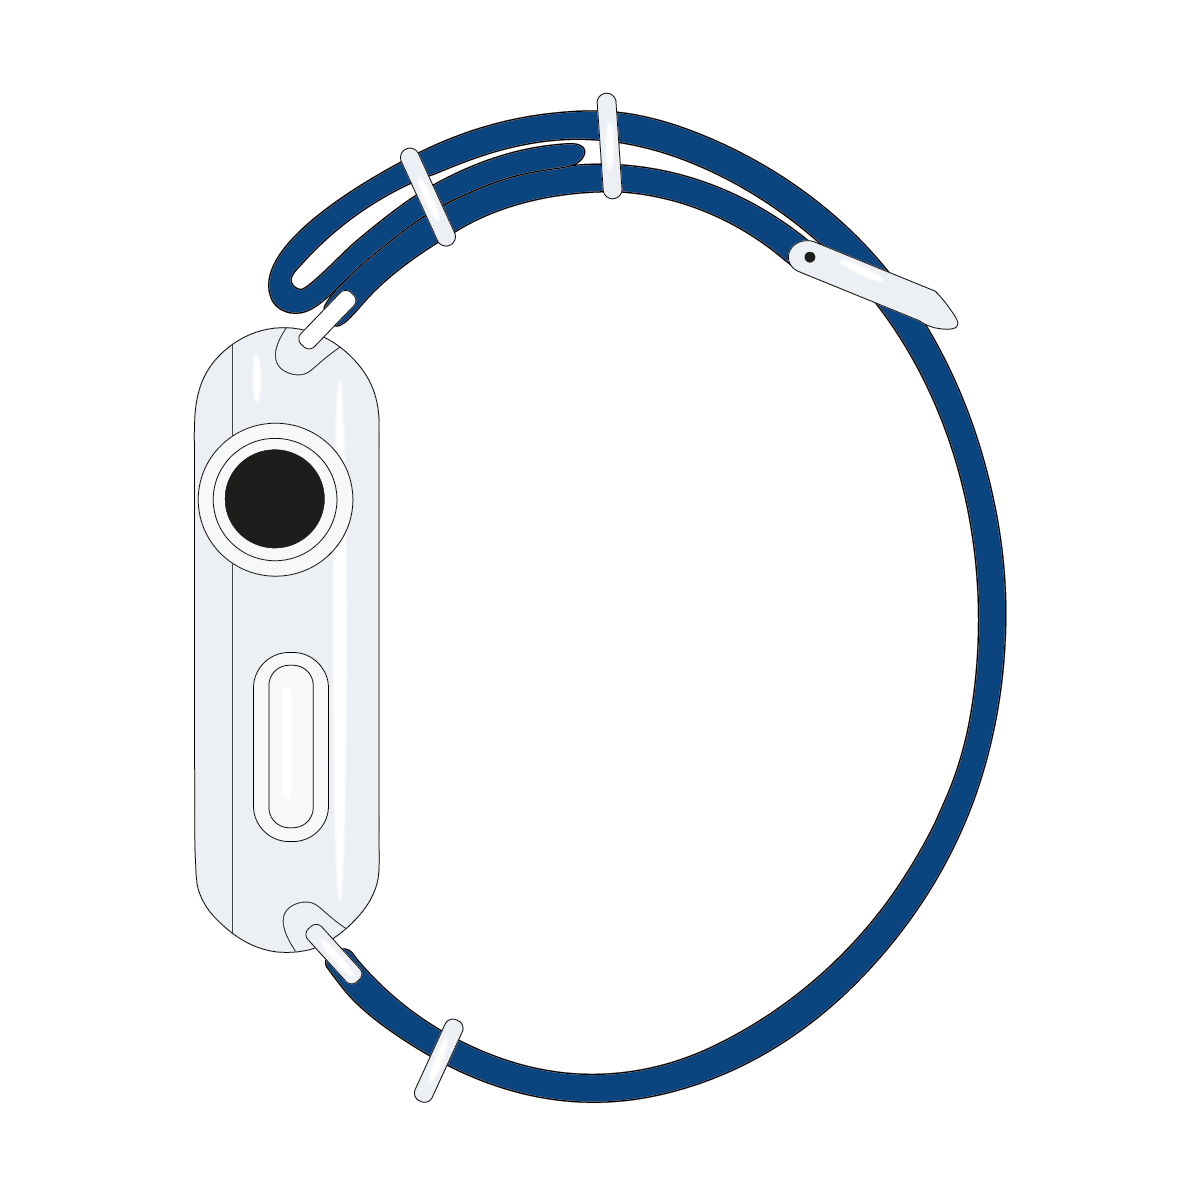 Correa para Apple Watch de nailon NATO en azul/blanco/rosa claro | Roobaya – Bild 4